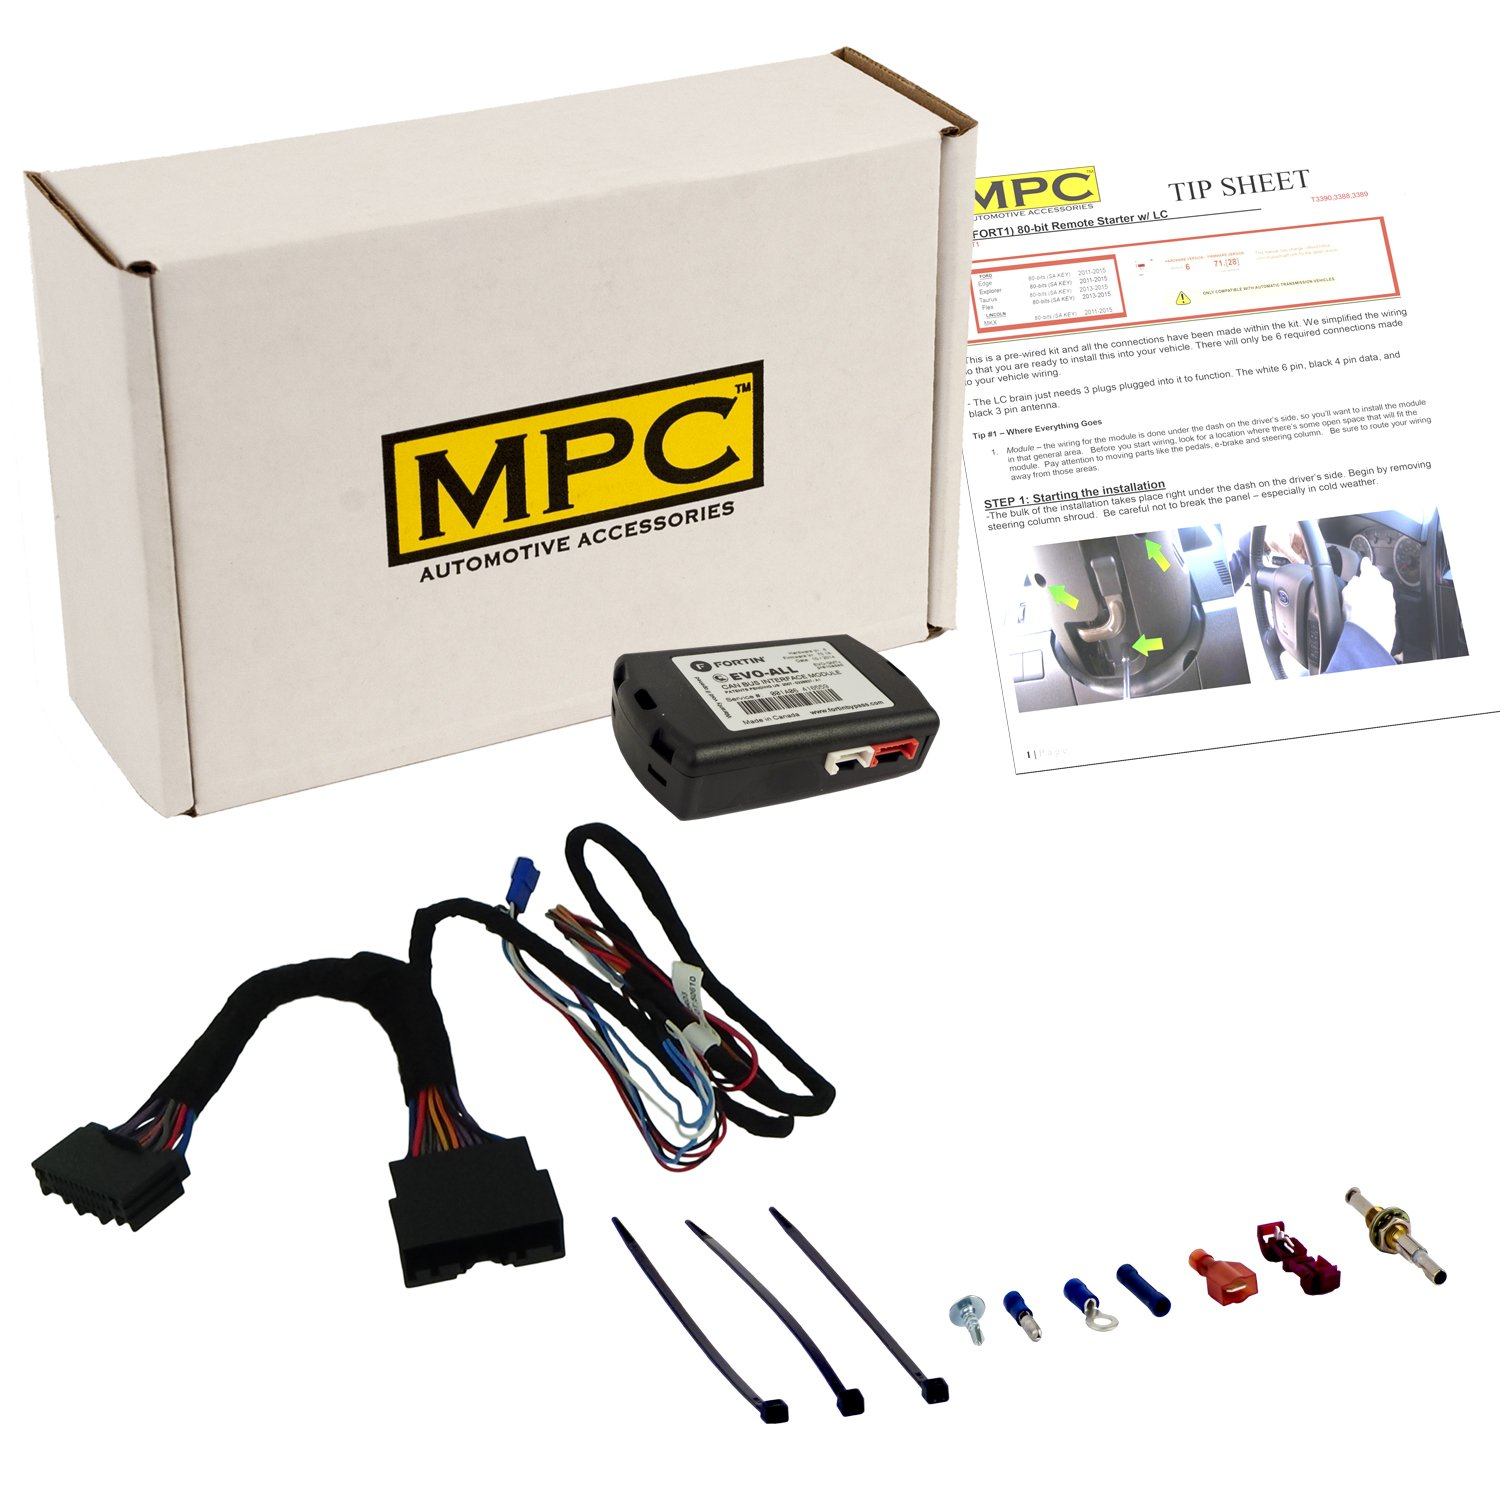 MPC Plug-n-Play Factory Remote Activated Remote Start Kit for 2015-2018 Ford F-150 - w/Bypass - Firmware Preloaded